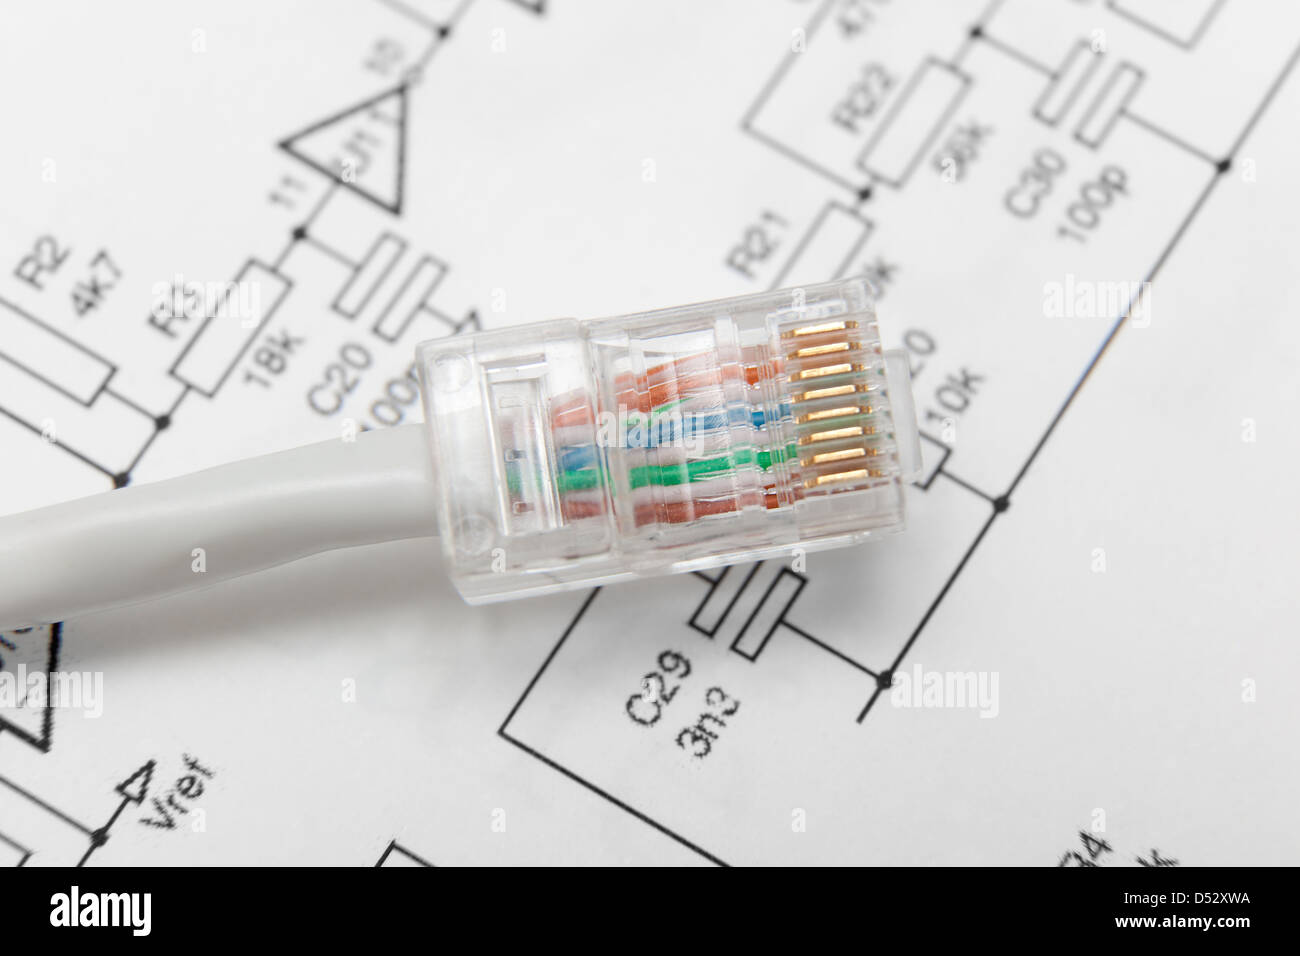 Computer Network Cable Rj45 Stock Photo 54769382 Alamy Basic Components Diagram Related